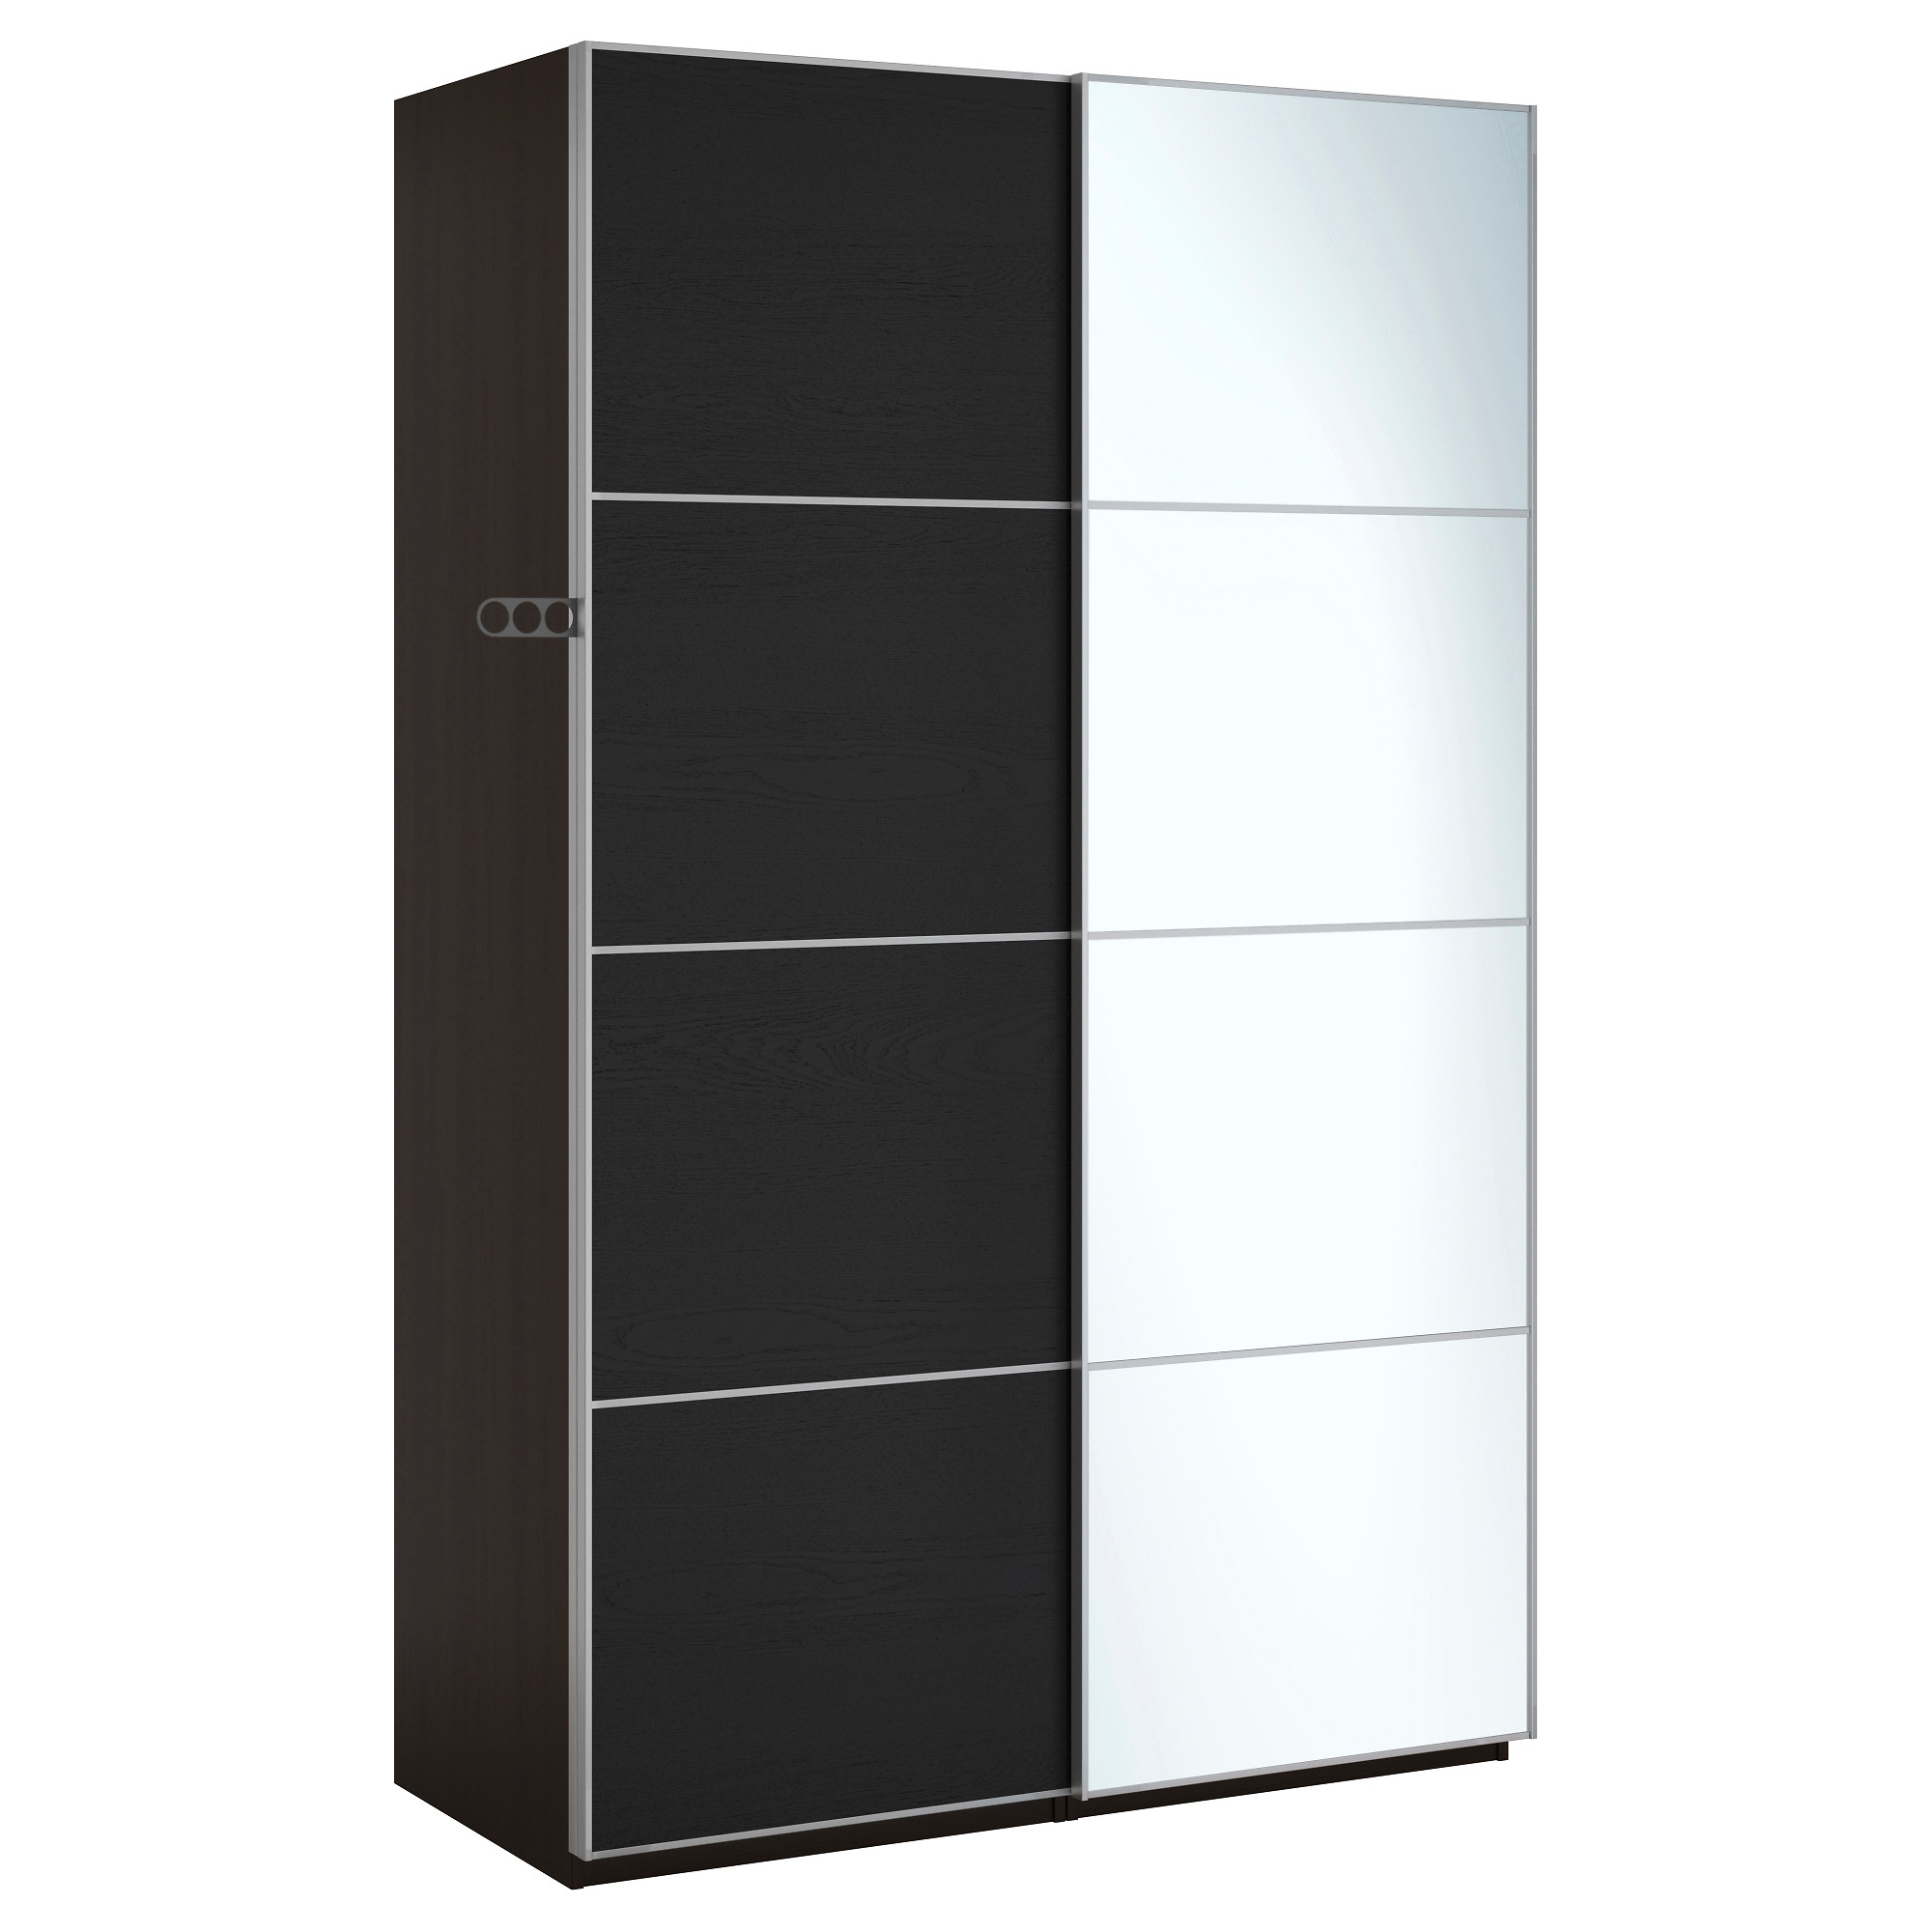 Chest Of Drawers Wardrobes Combination Regarding 2018 Pax Wardrobe – 150X66X201 Cm, Soft Closing Damper – Ikea (View 4 of 15)